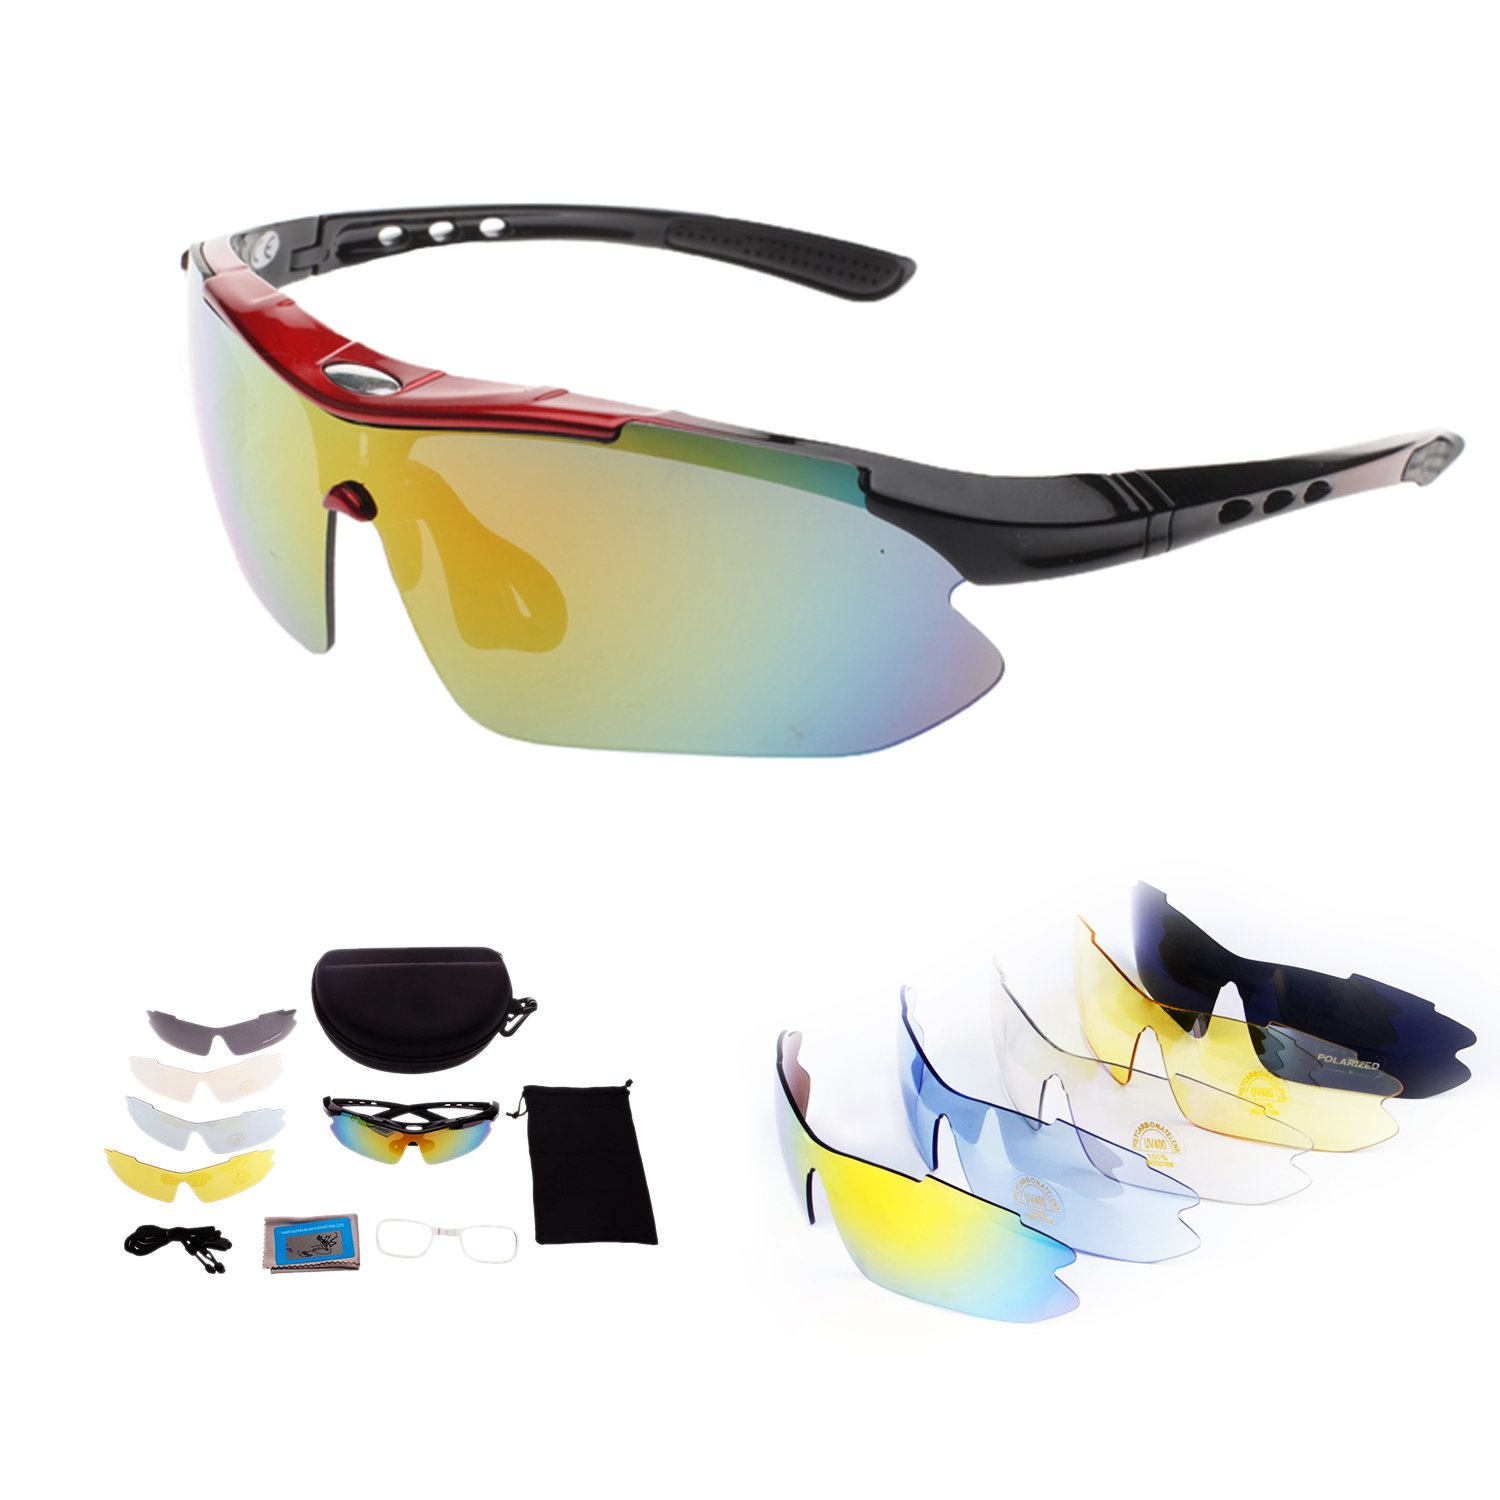 3a7c5080fb2c Amazon.com: Polarized Sport Sunglasses With 8 Interchangeable Lenses:  Clothing